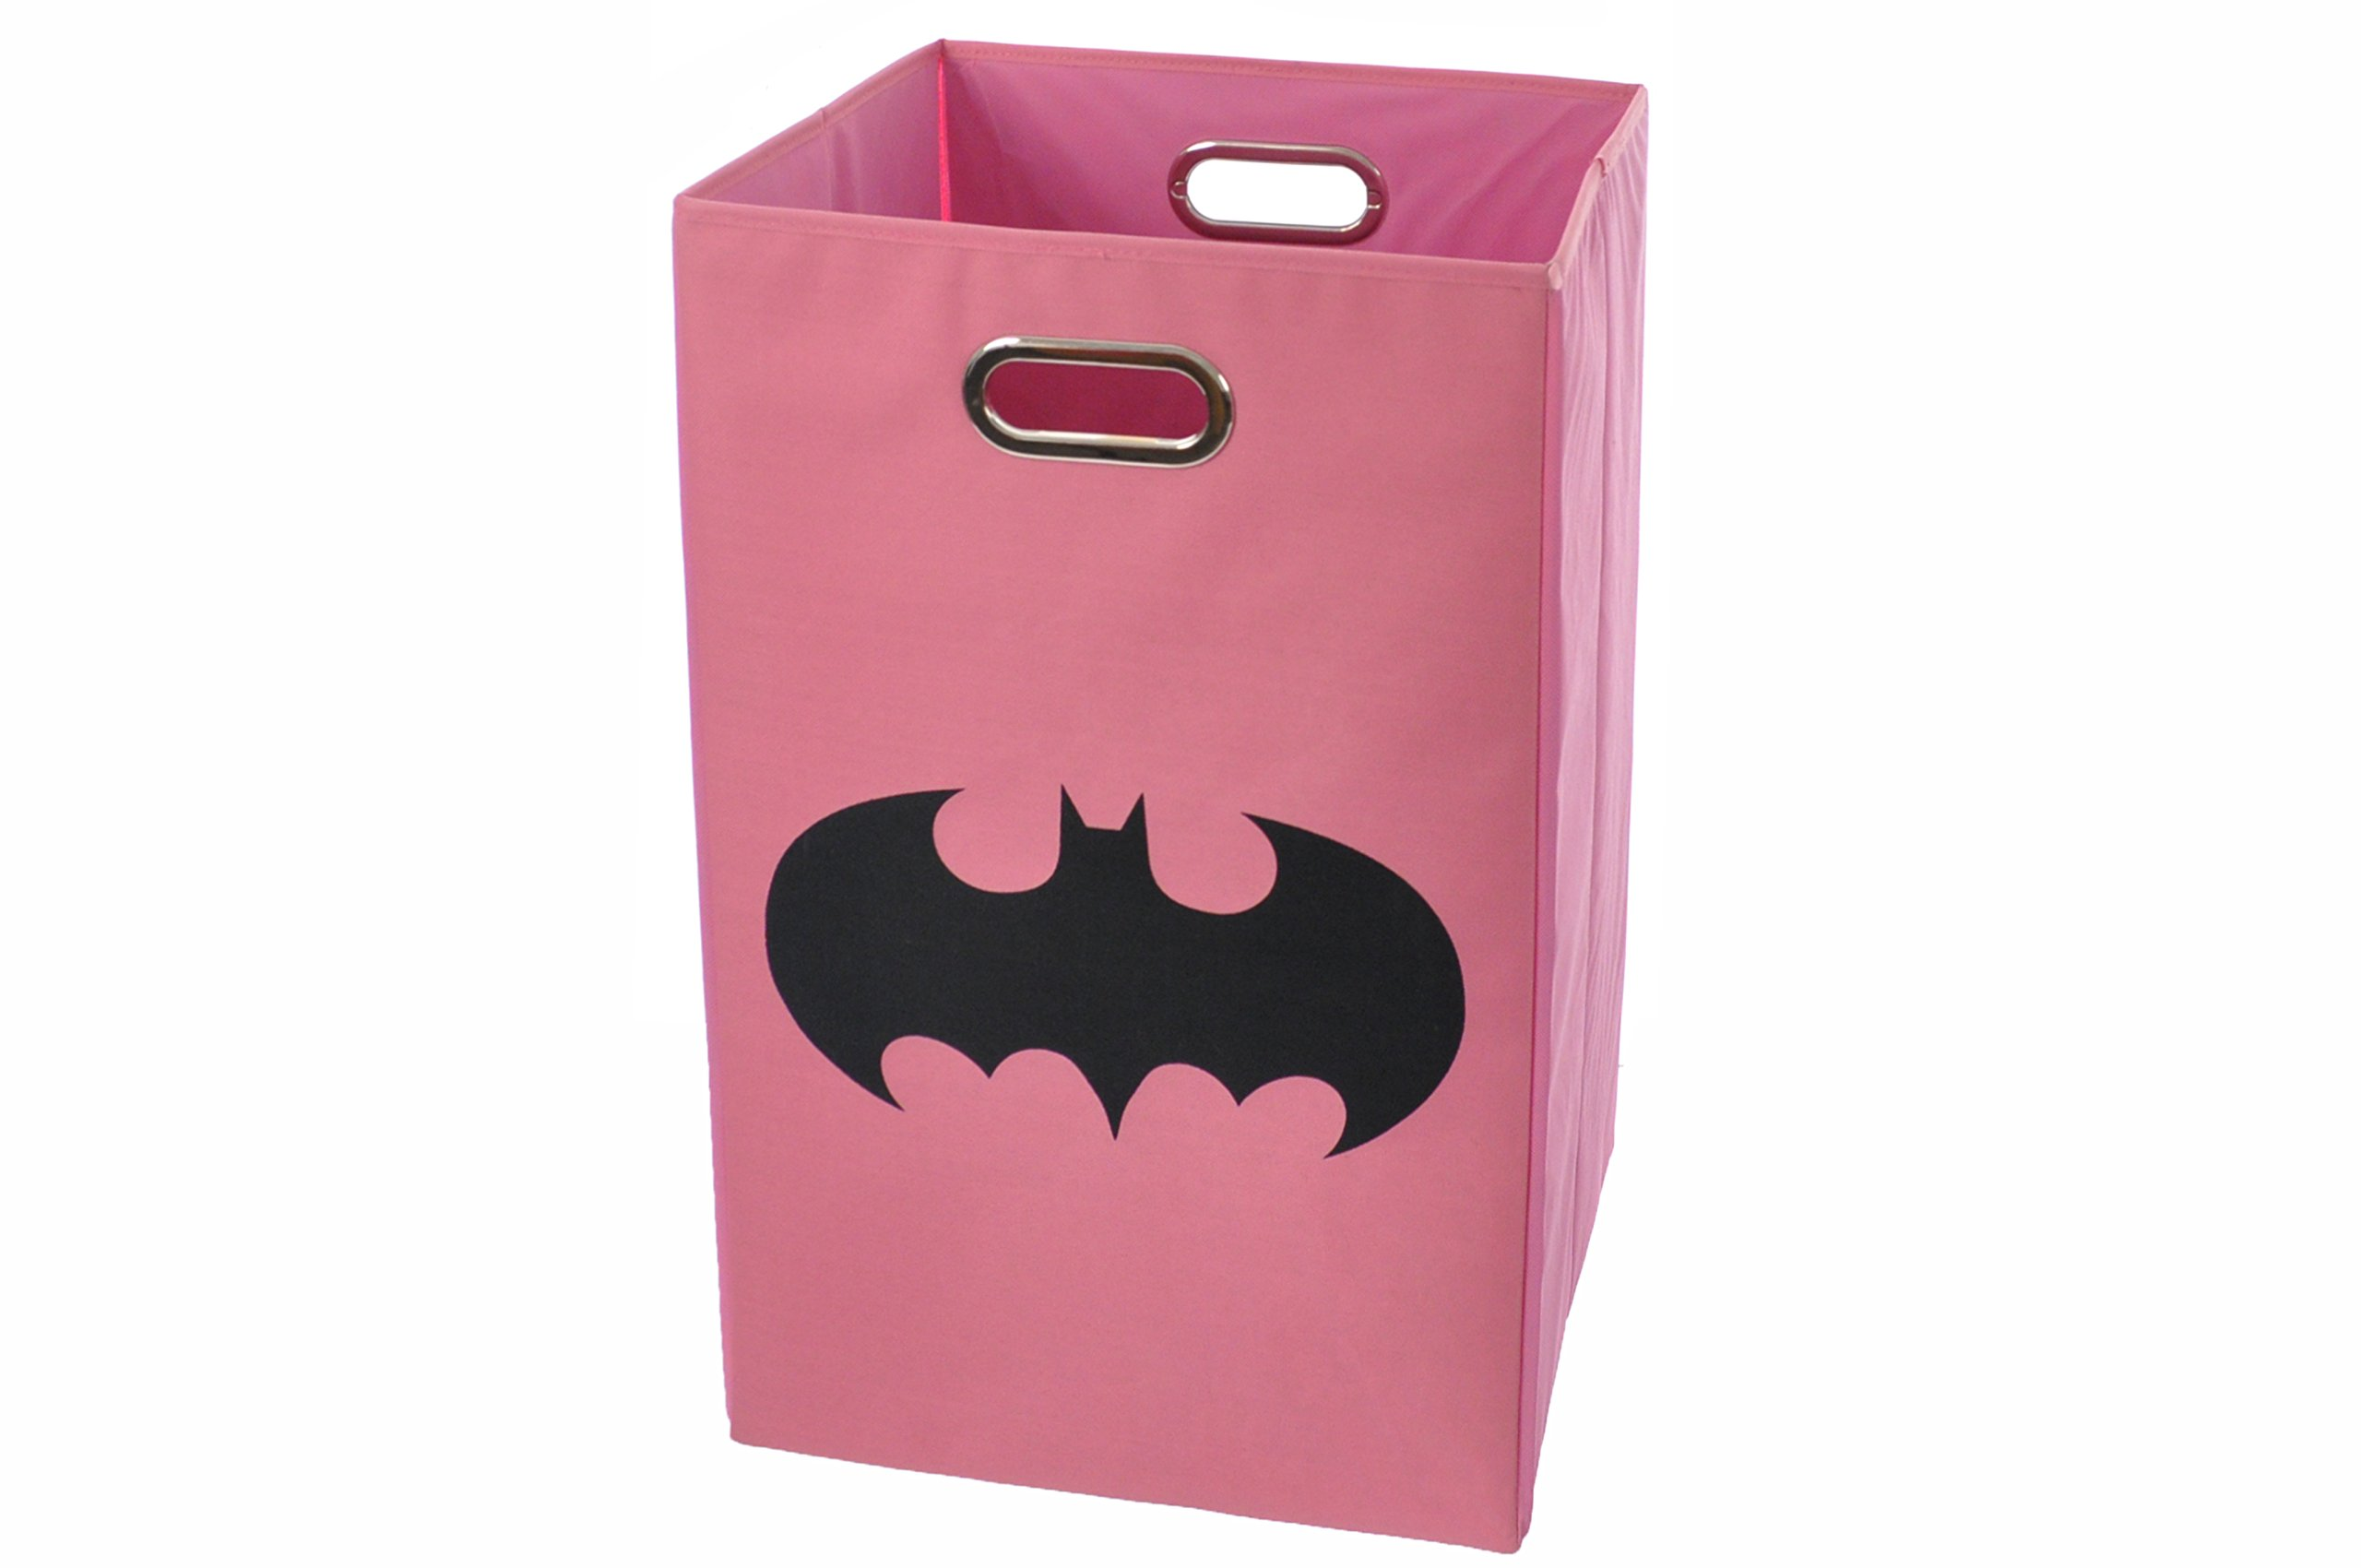 Batman Shield Folding Laundry Basket, Pink